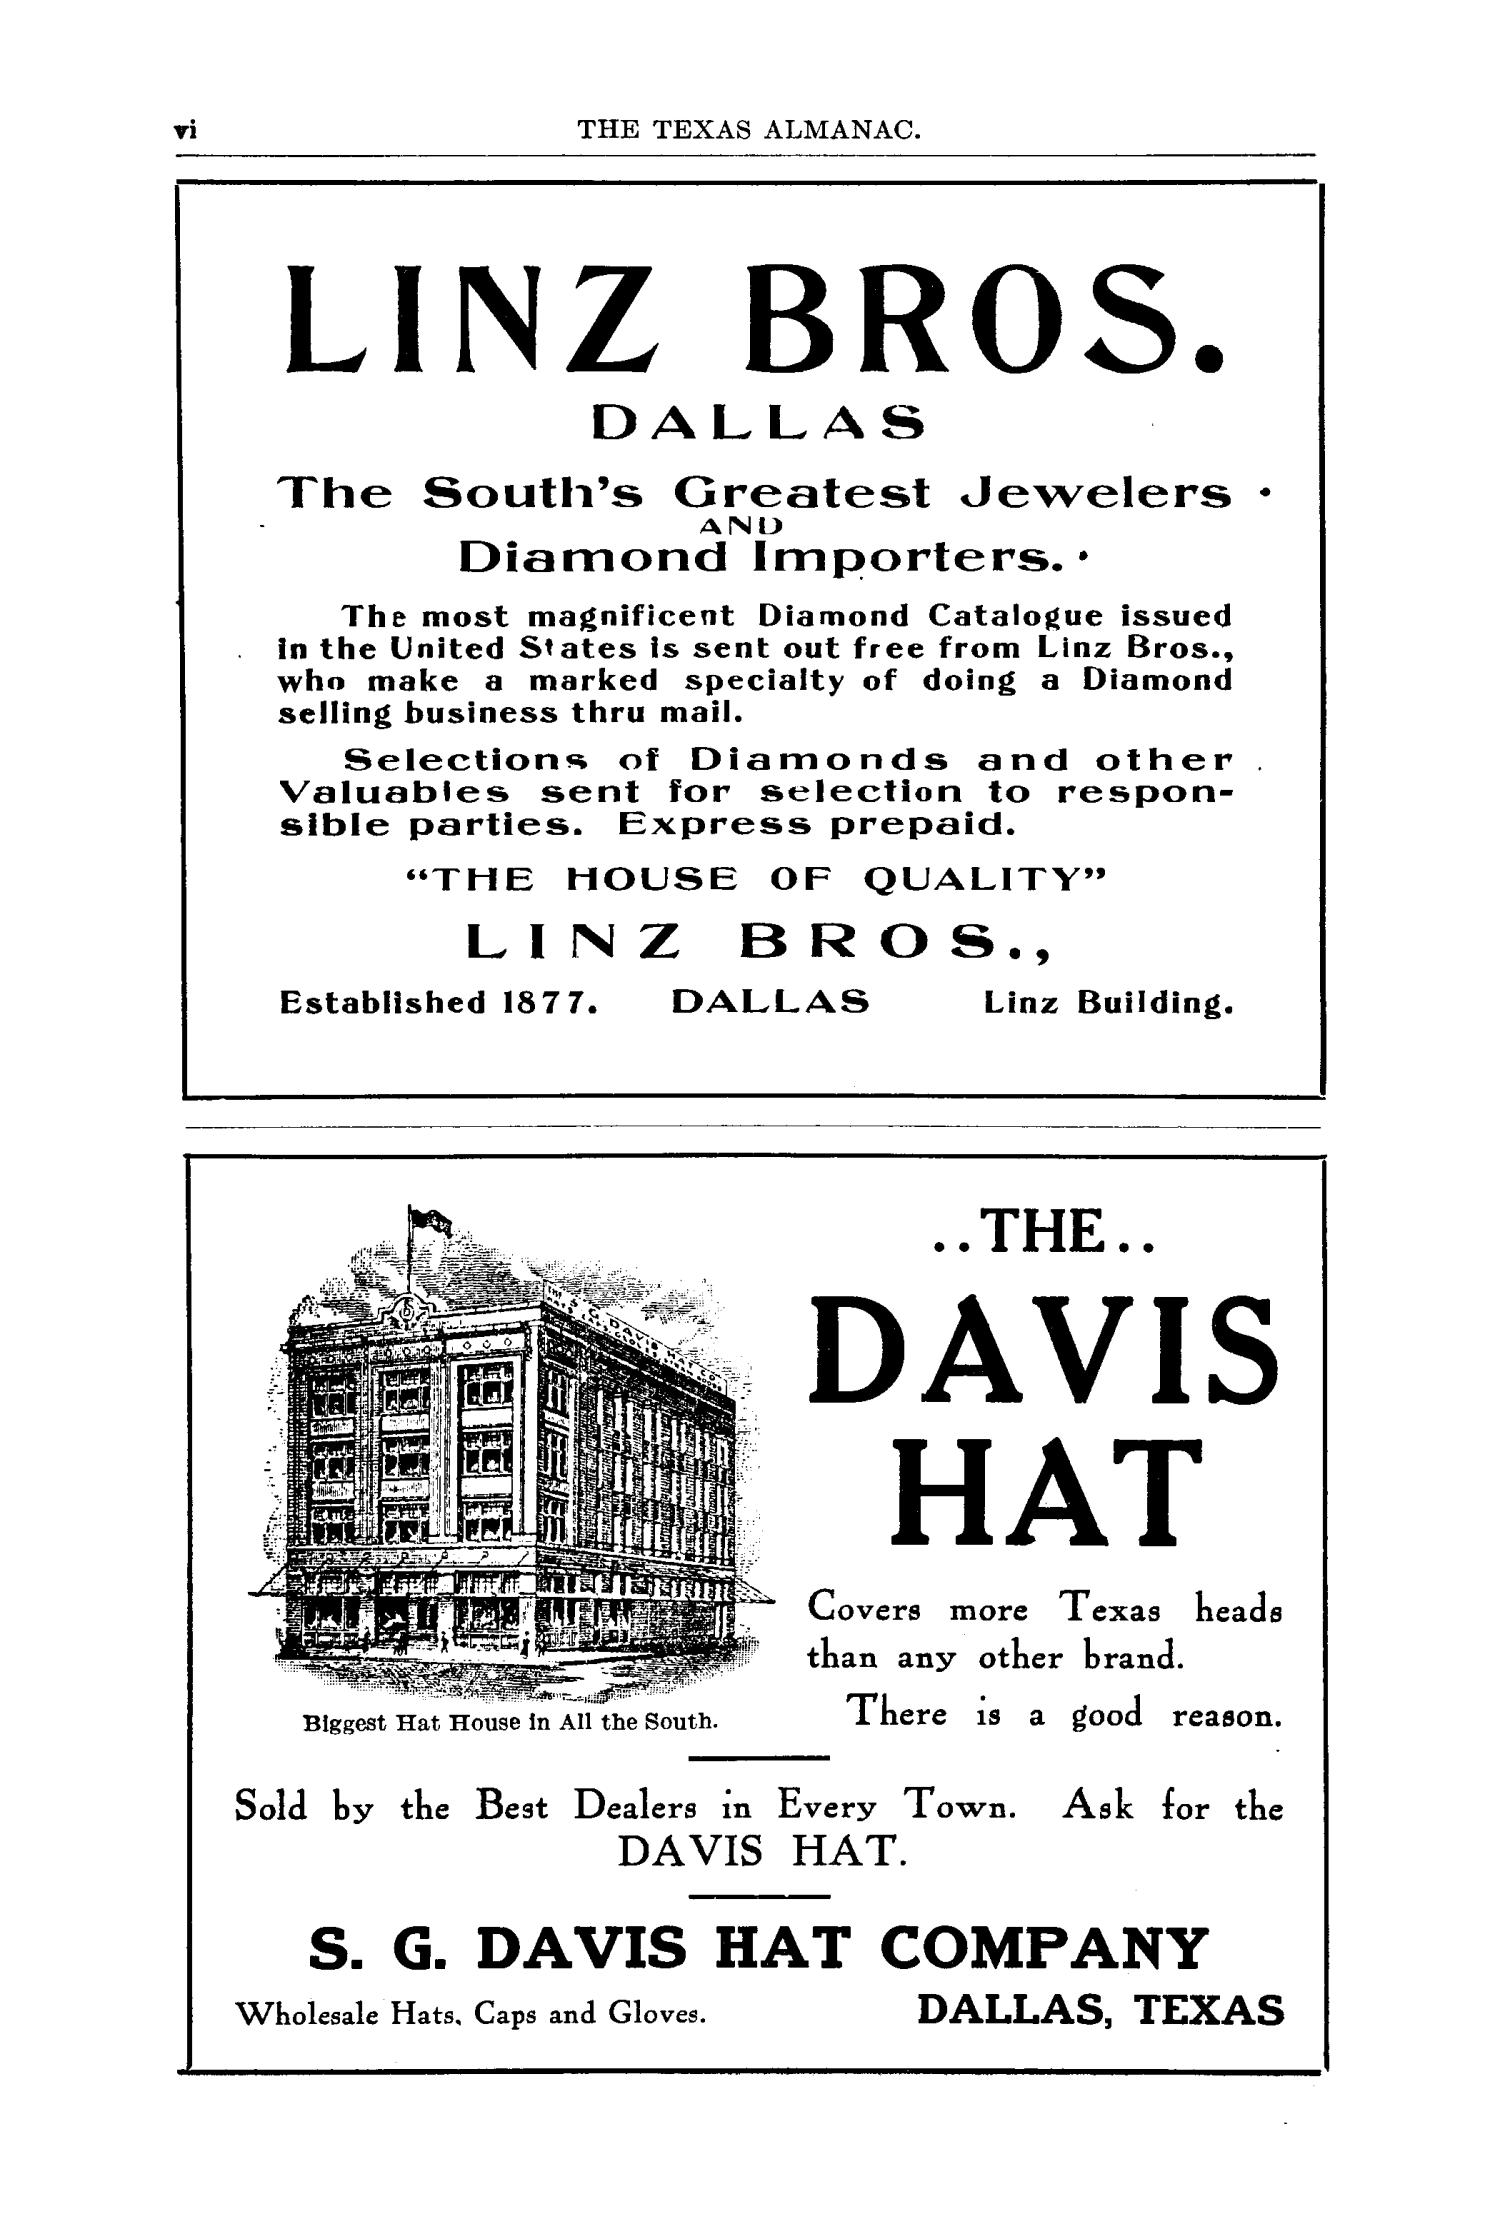 Texas Almanac and State Industrial Guide for 1911 with Map                                                                                                      VI